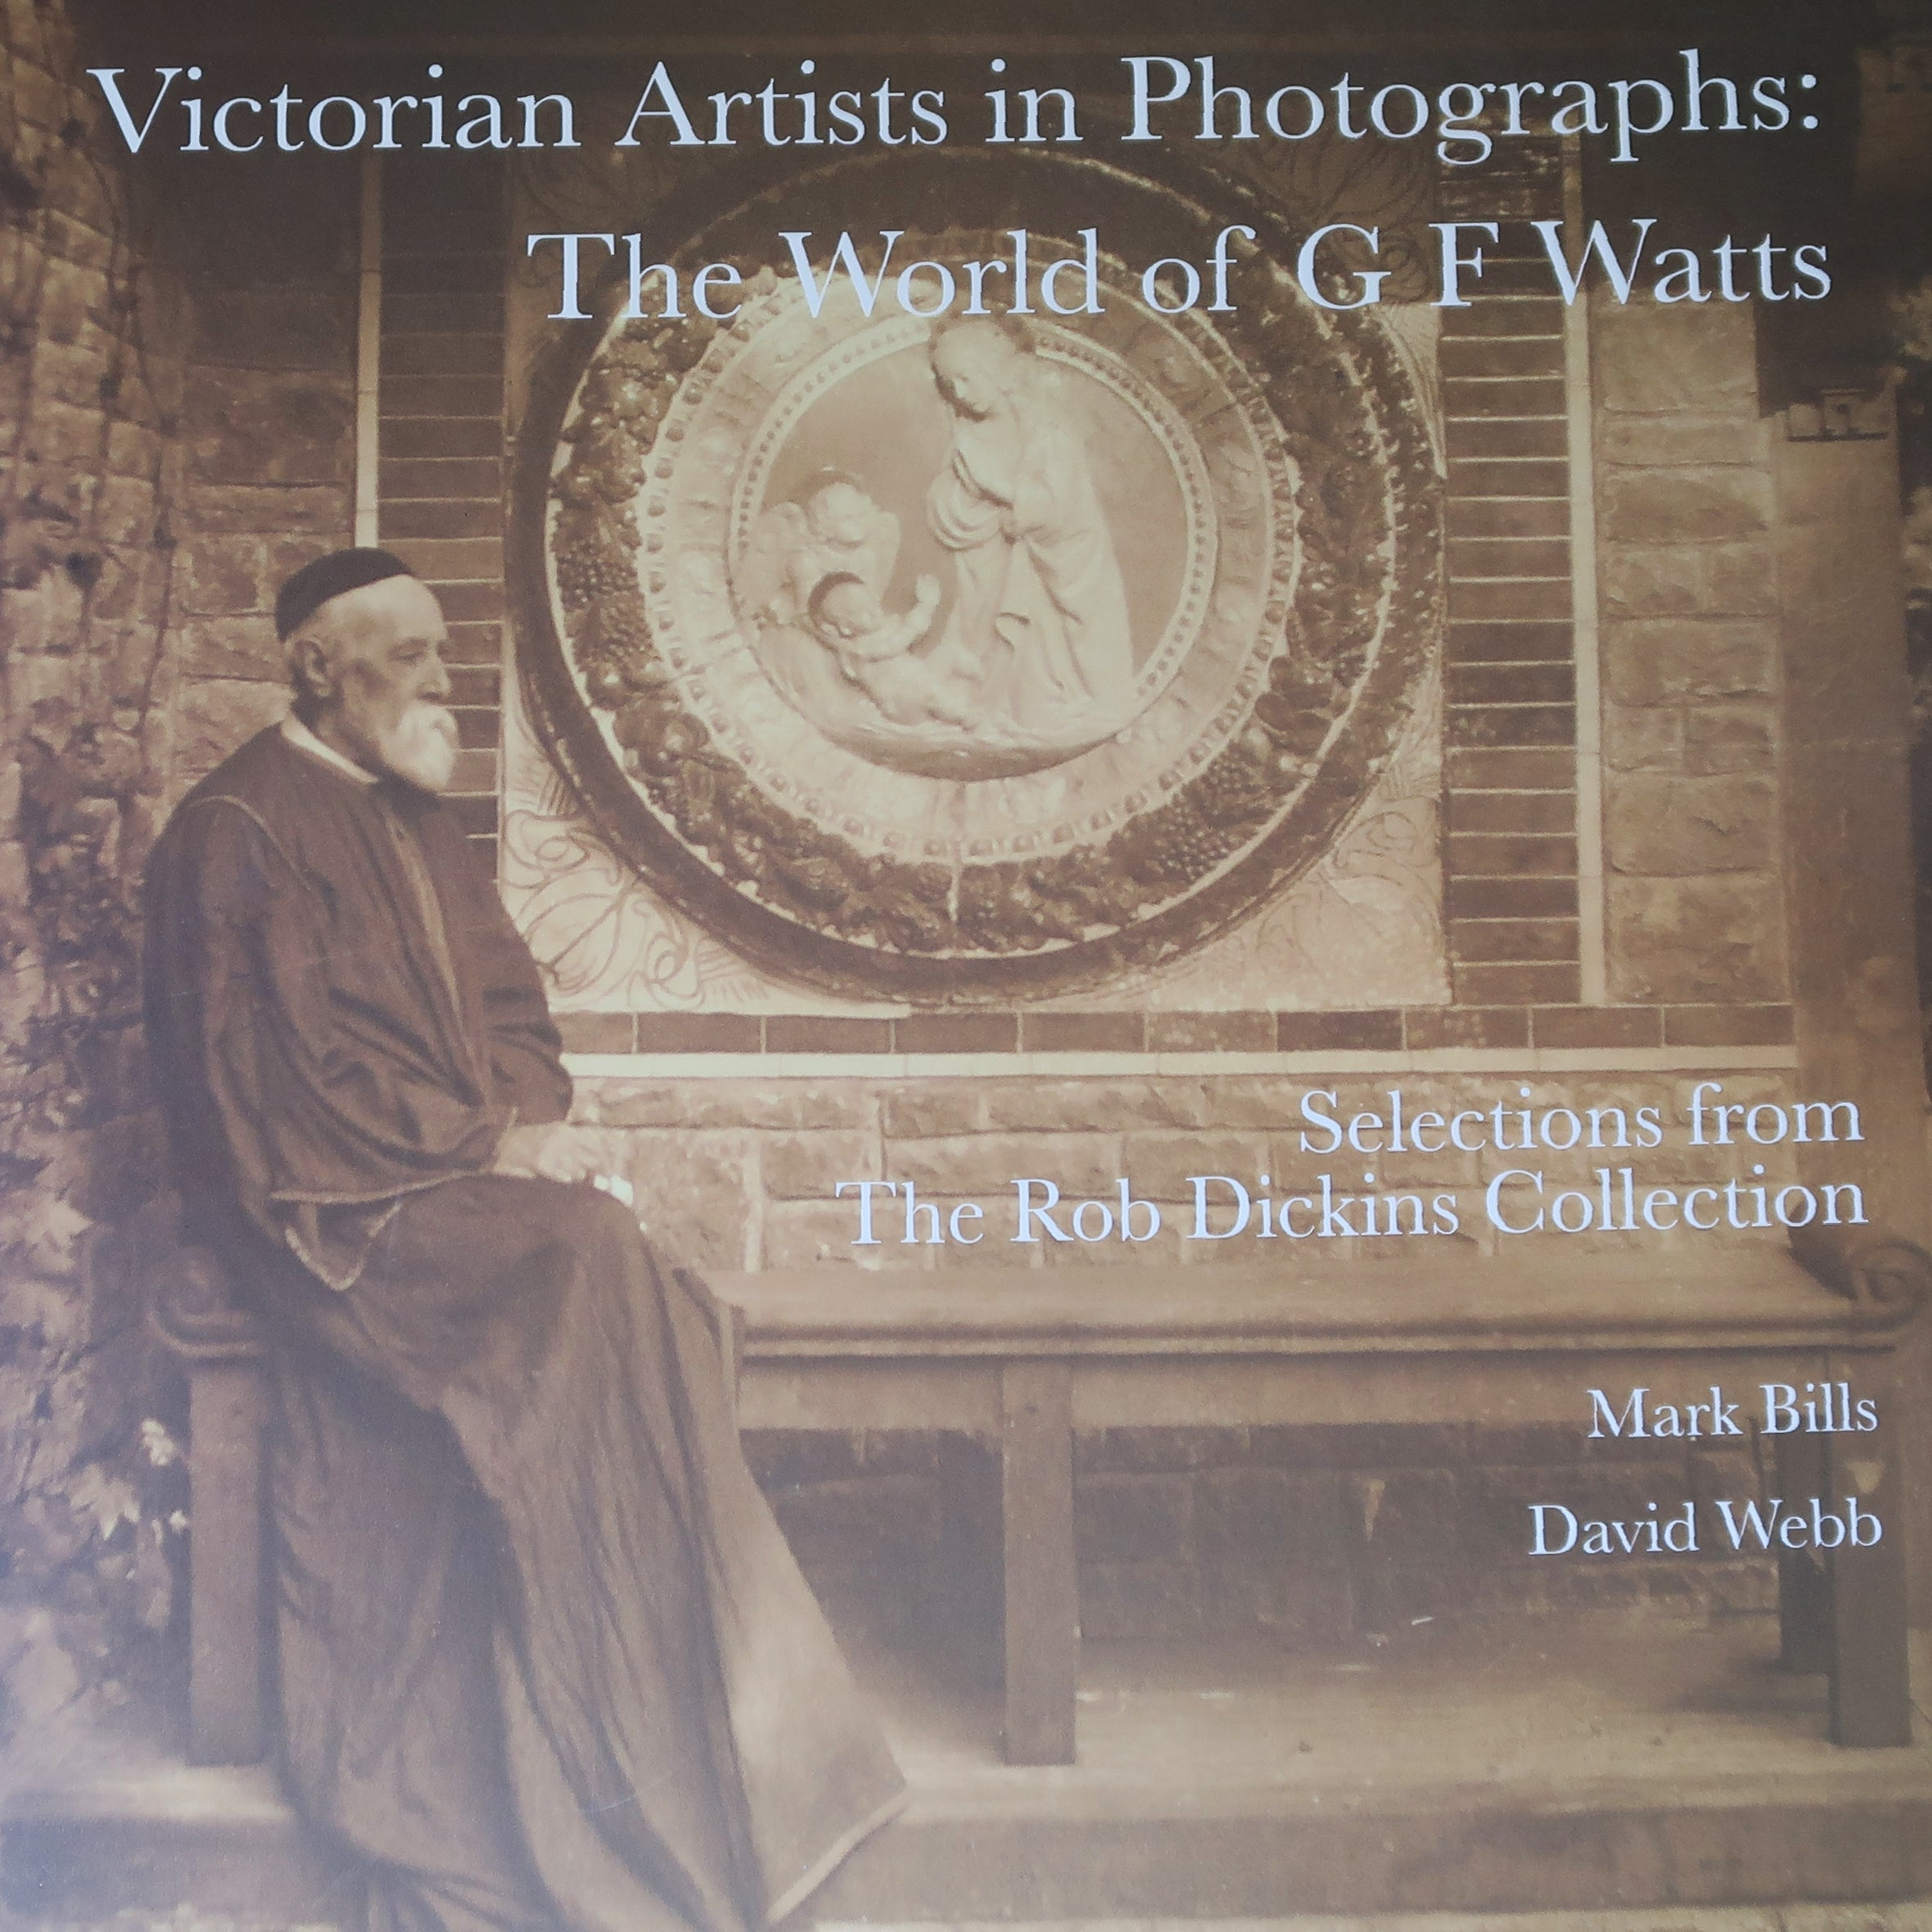 Victorian Artists in Photographs